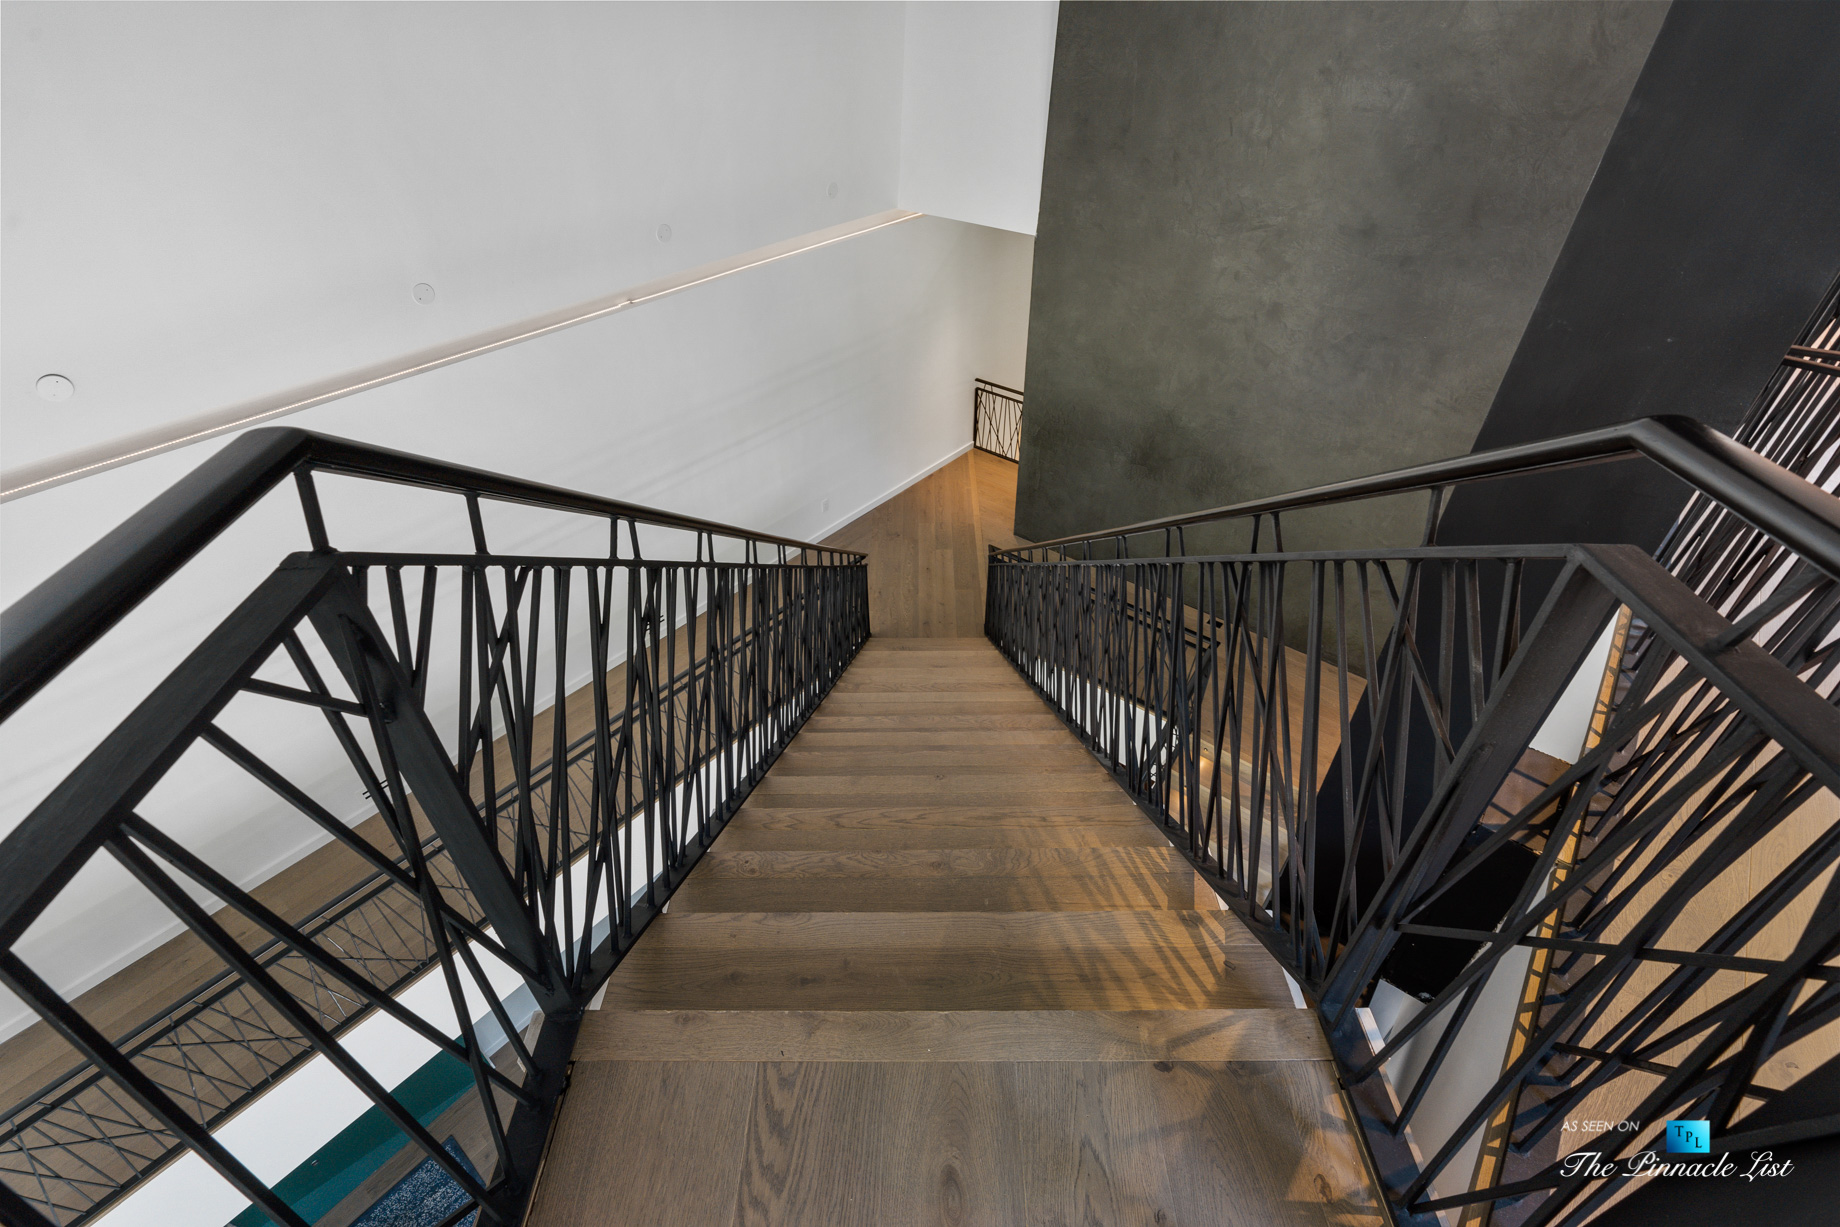 2716 Ridgewood Rd NW, Atlanta, GA, USA - Artistic Stairs - Luxury Real Estate - Modern Contemporary Buckhead Home